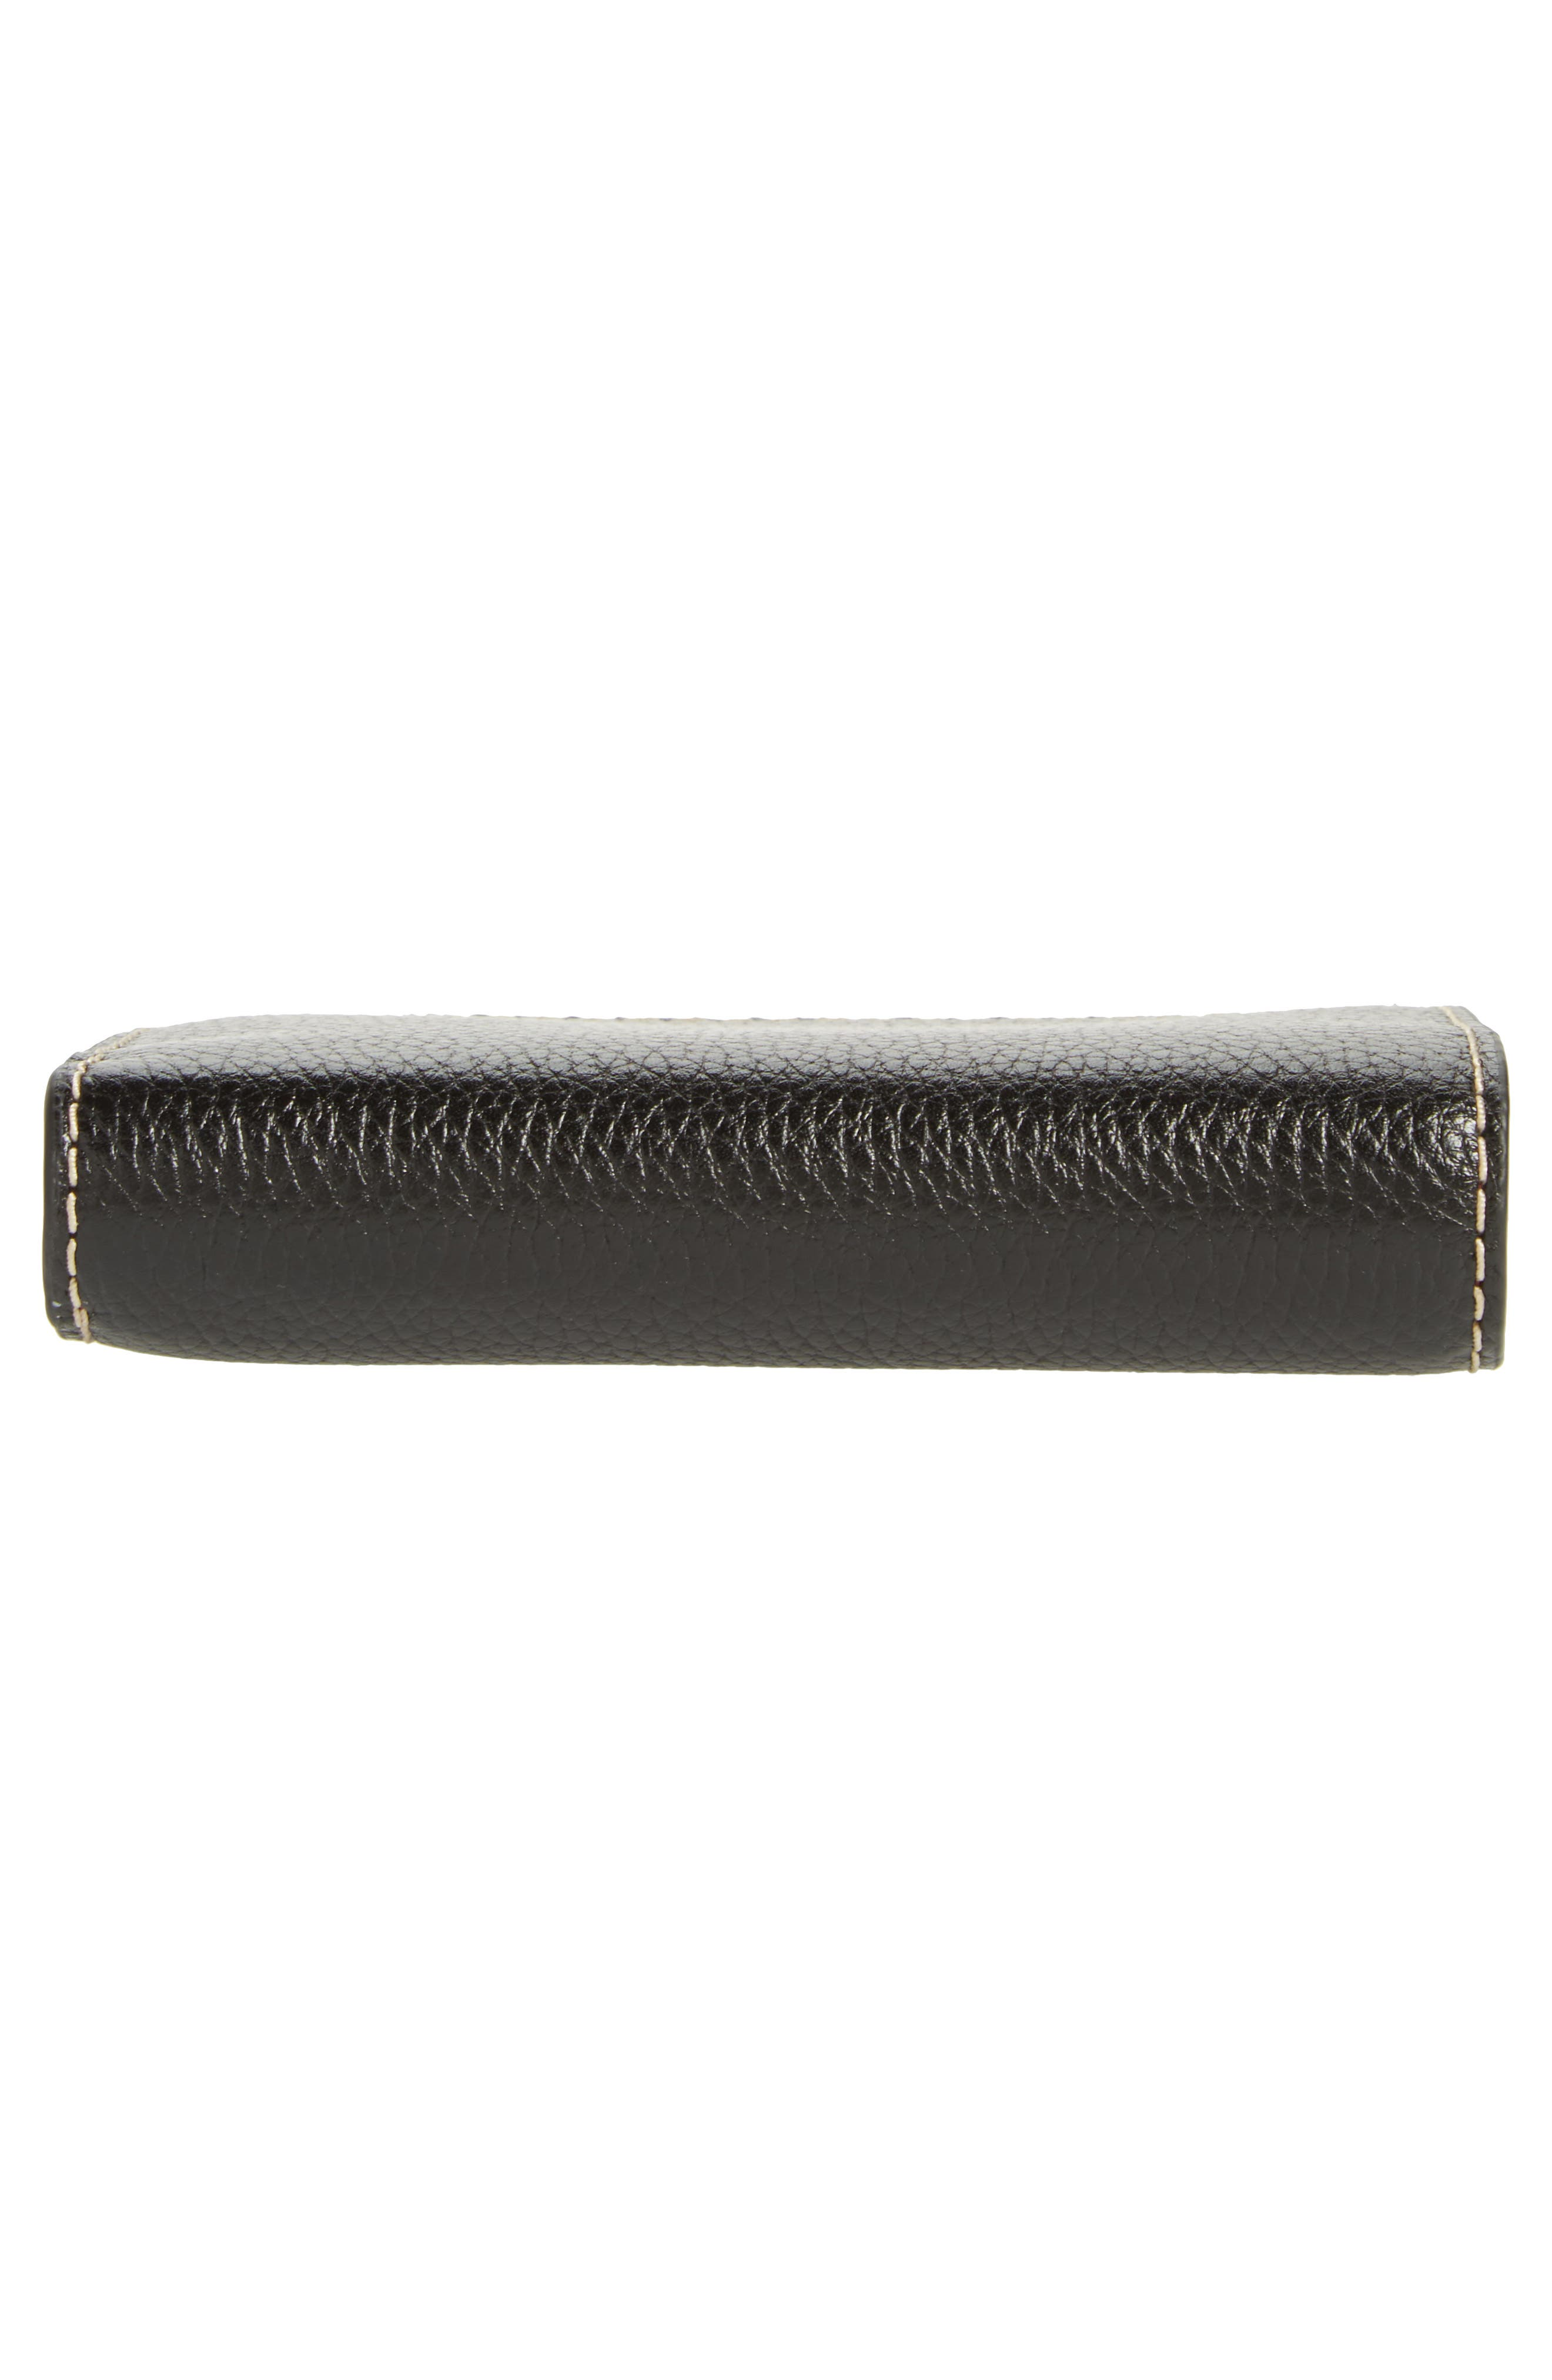 The Grind Compact Leather Wallet,                             Alternate thumbnail 6, color,                             001